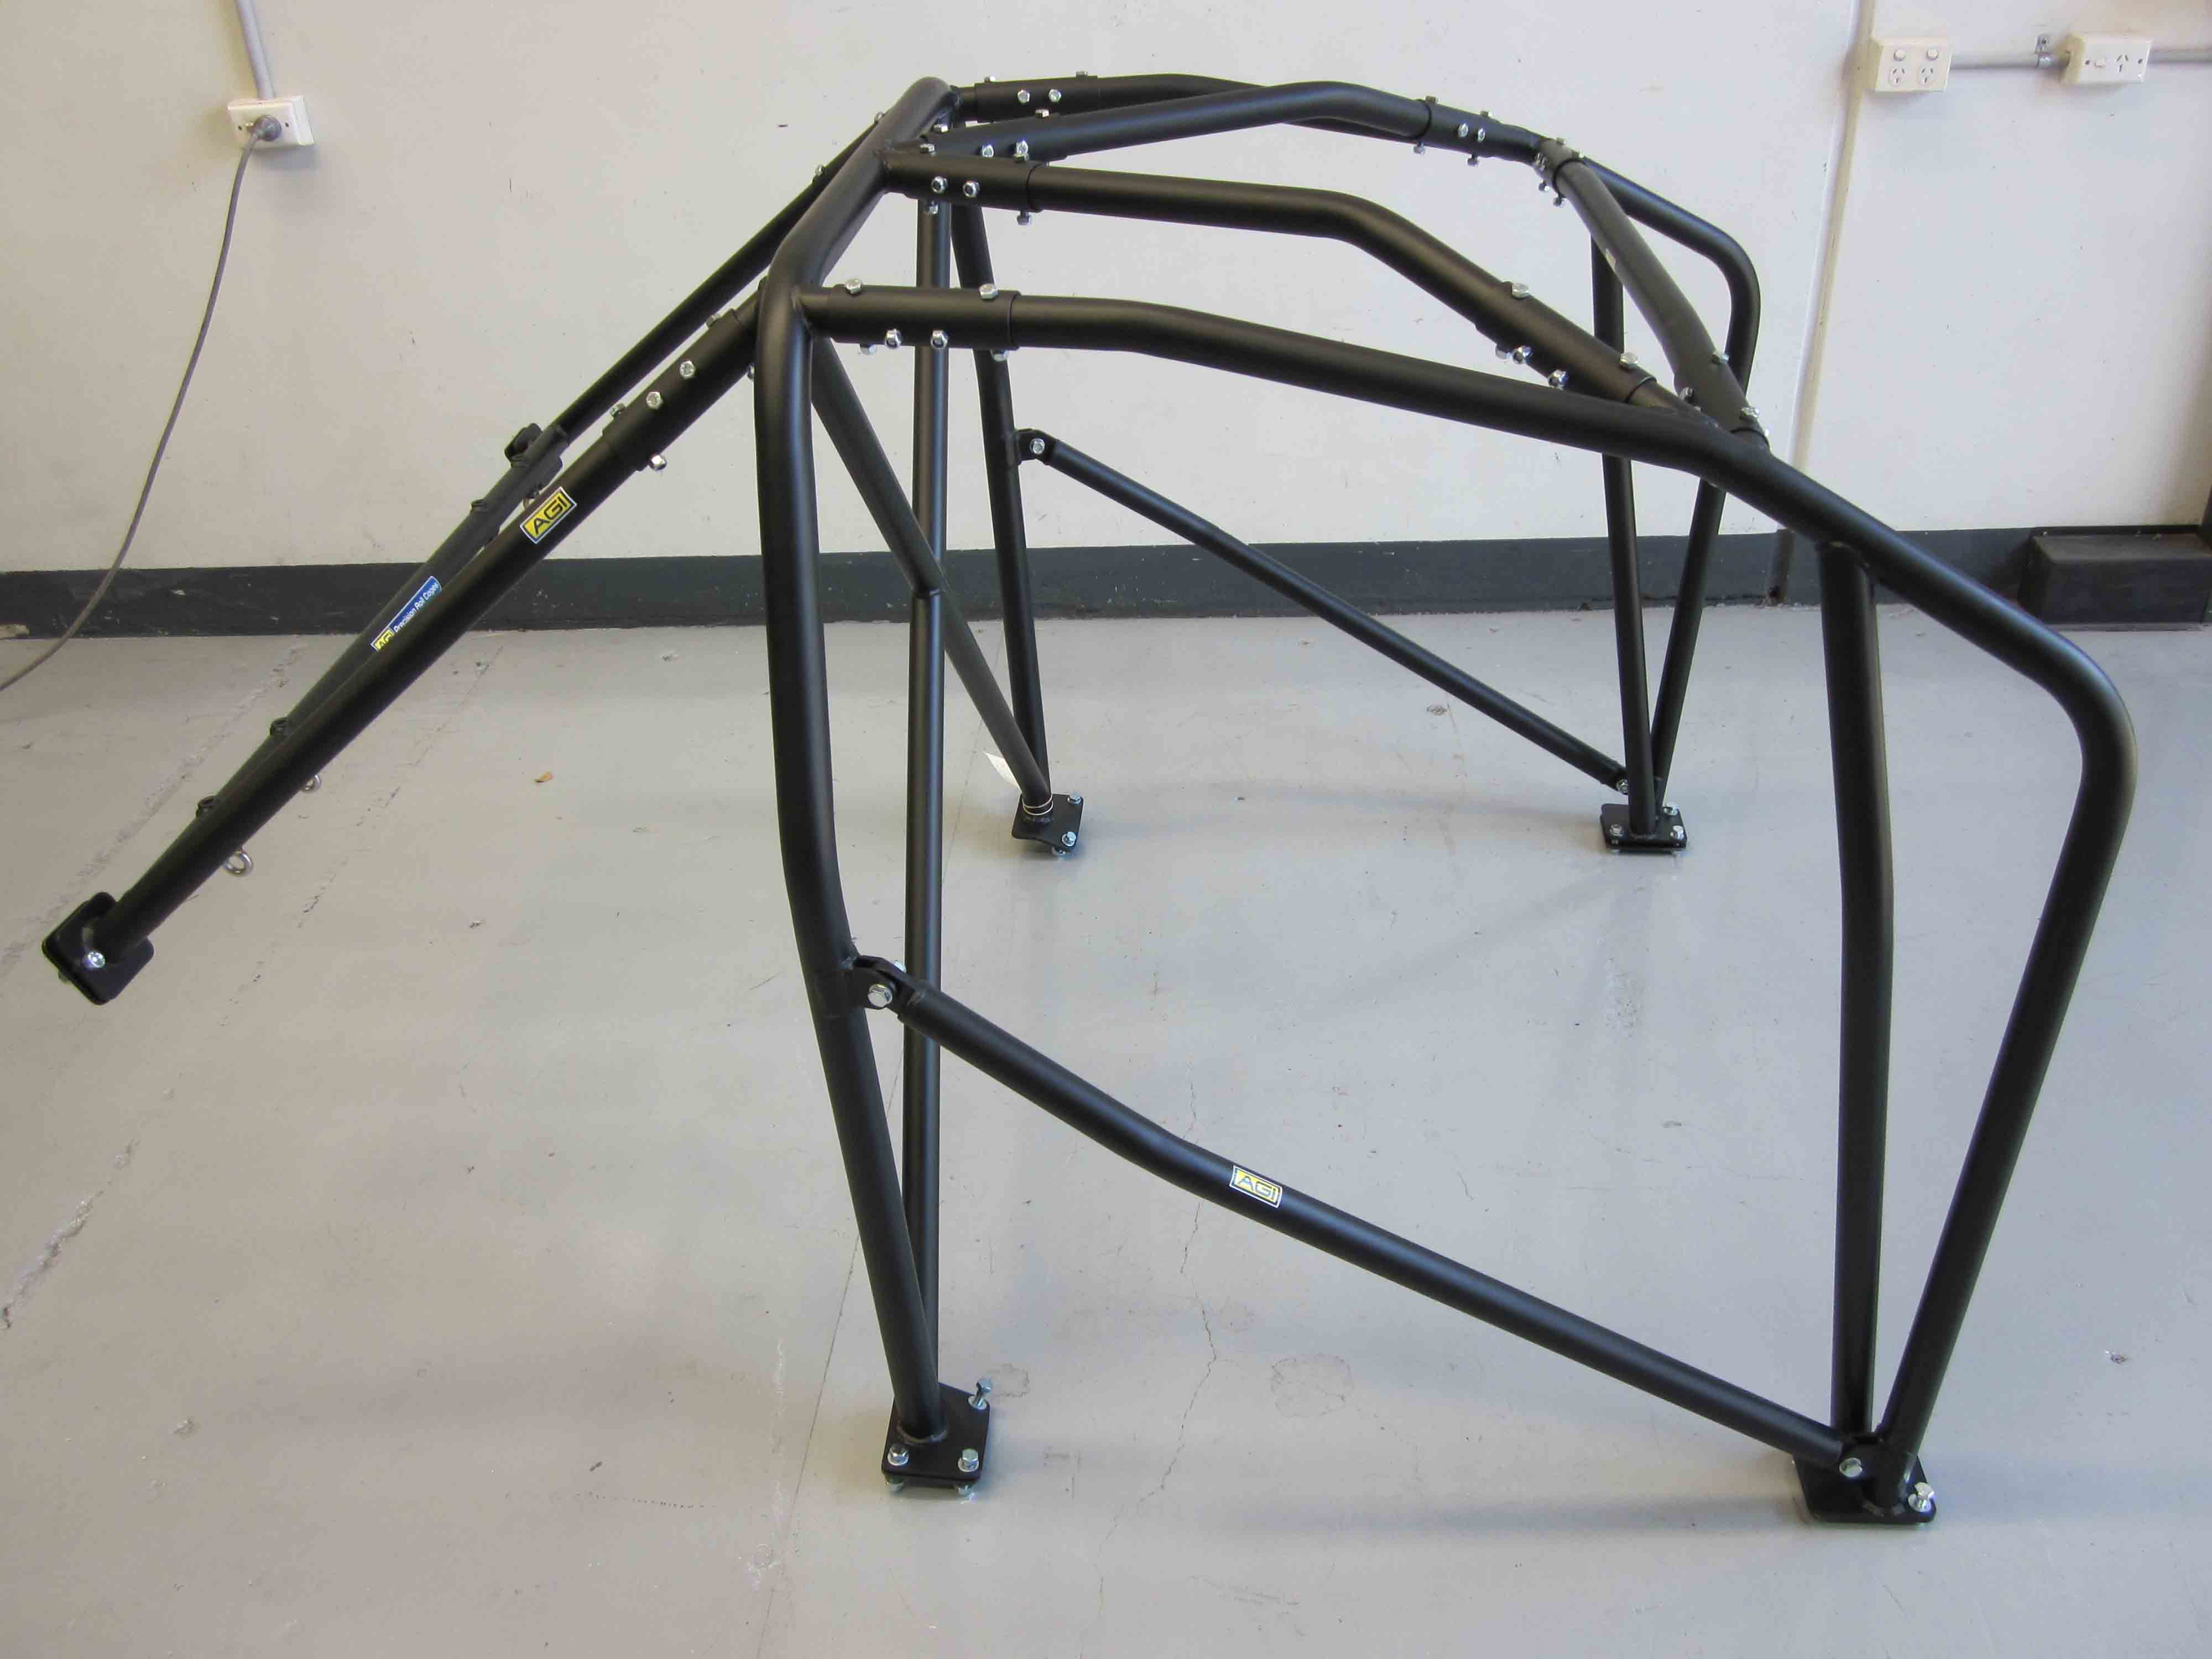 Subaru WRX GC8 - Bolt-in Roll Cage - Option E